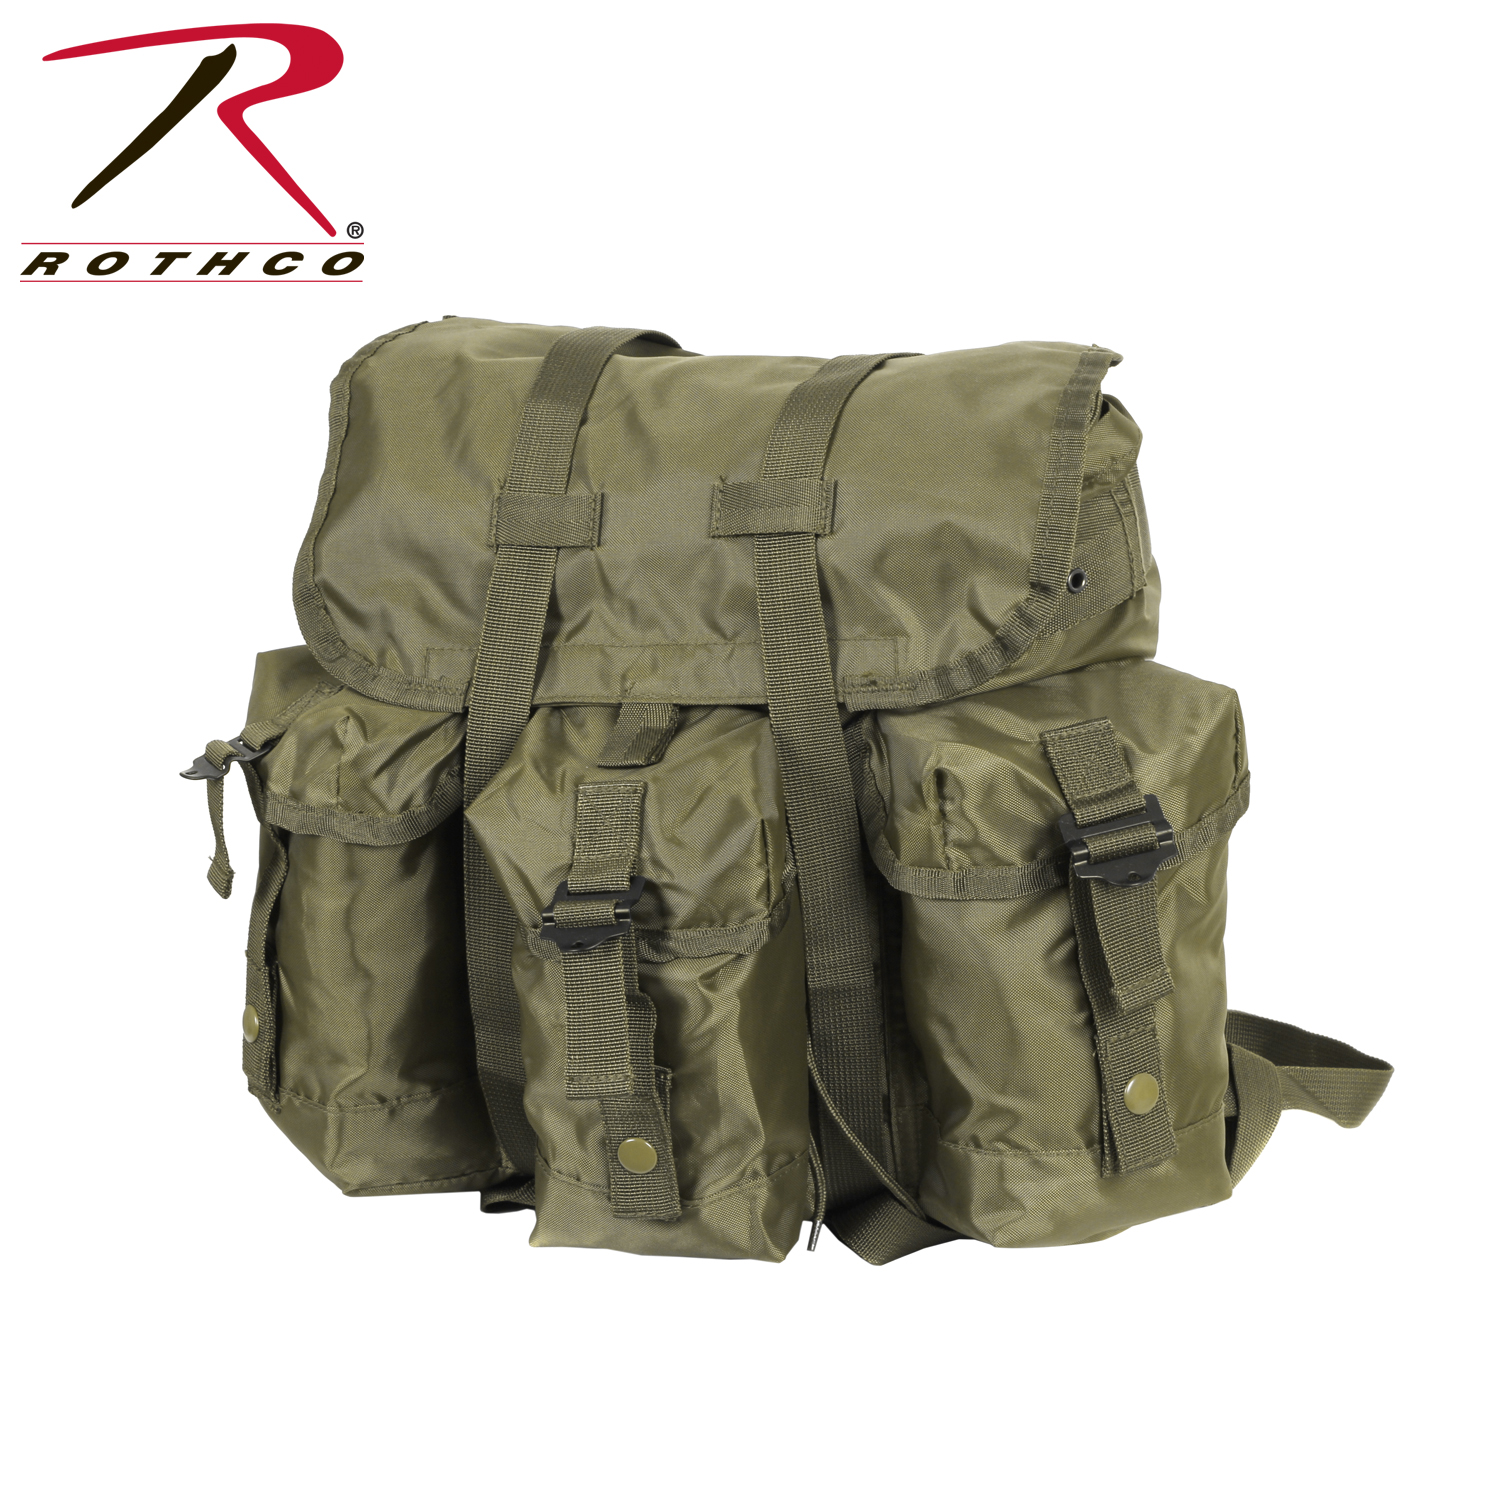 loading zoom - Military Rucksack With Frame